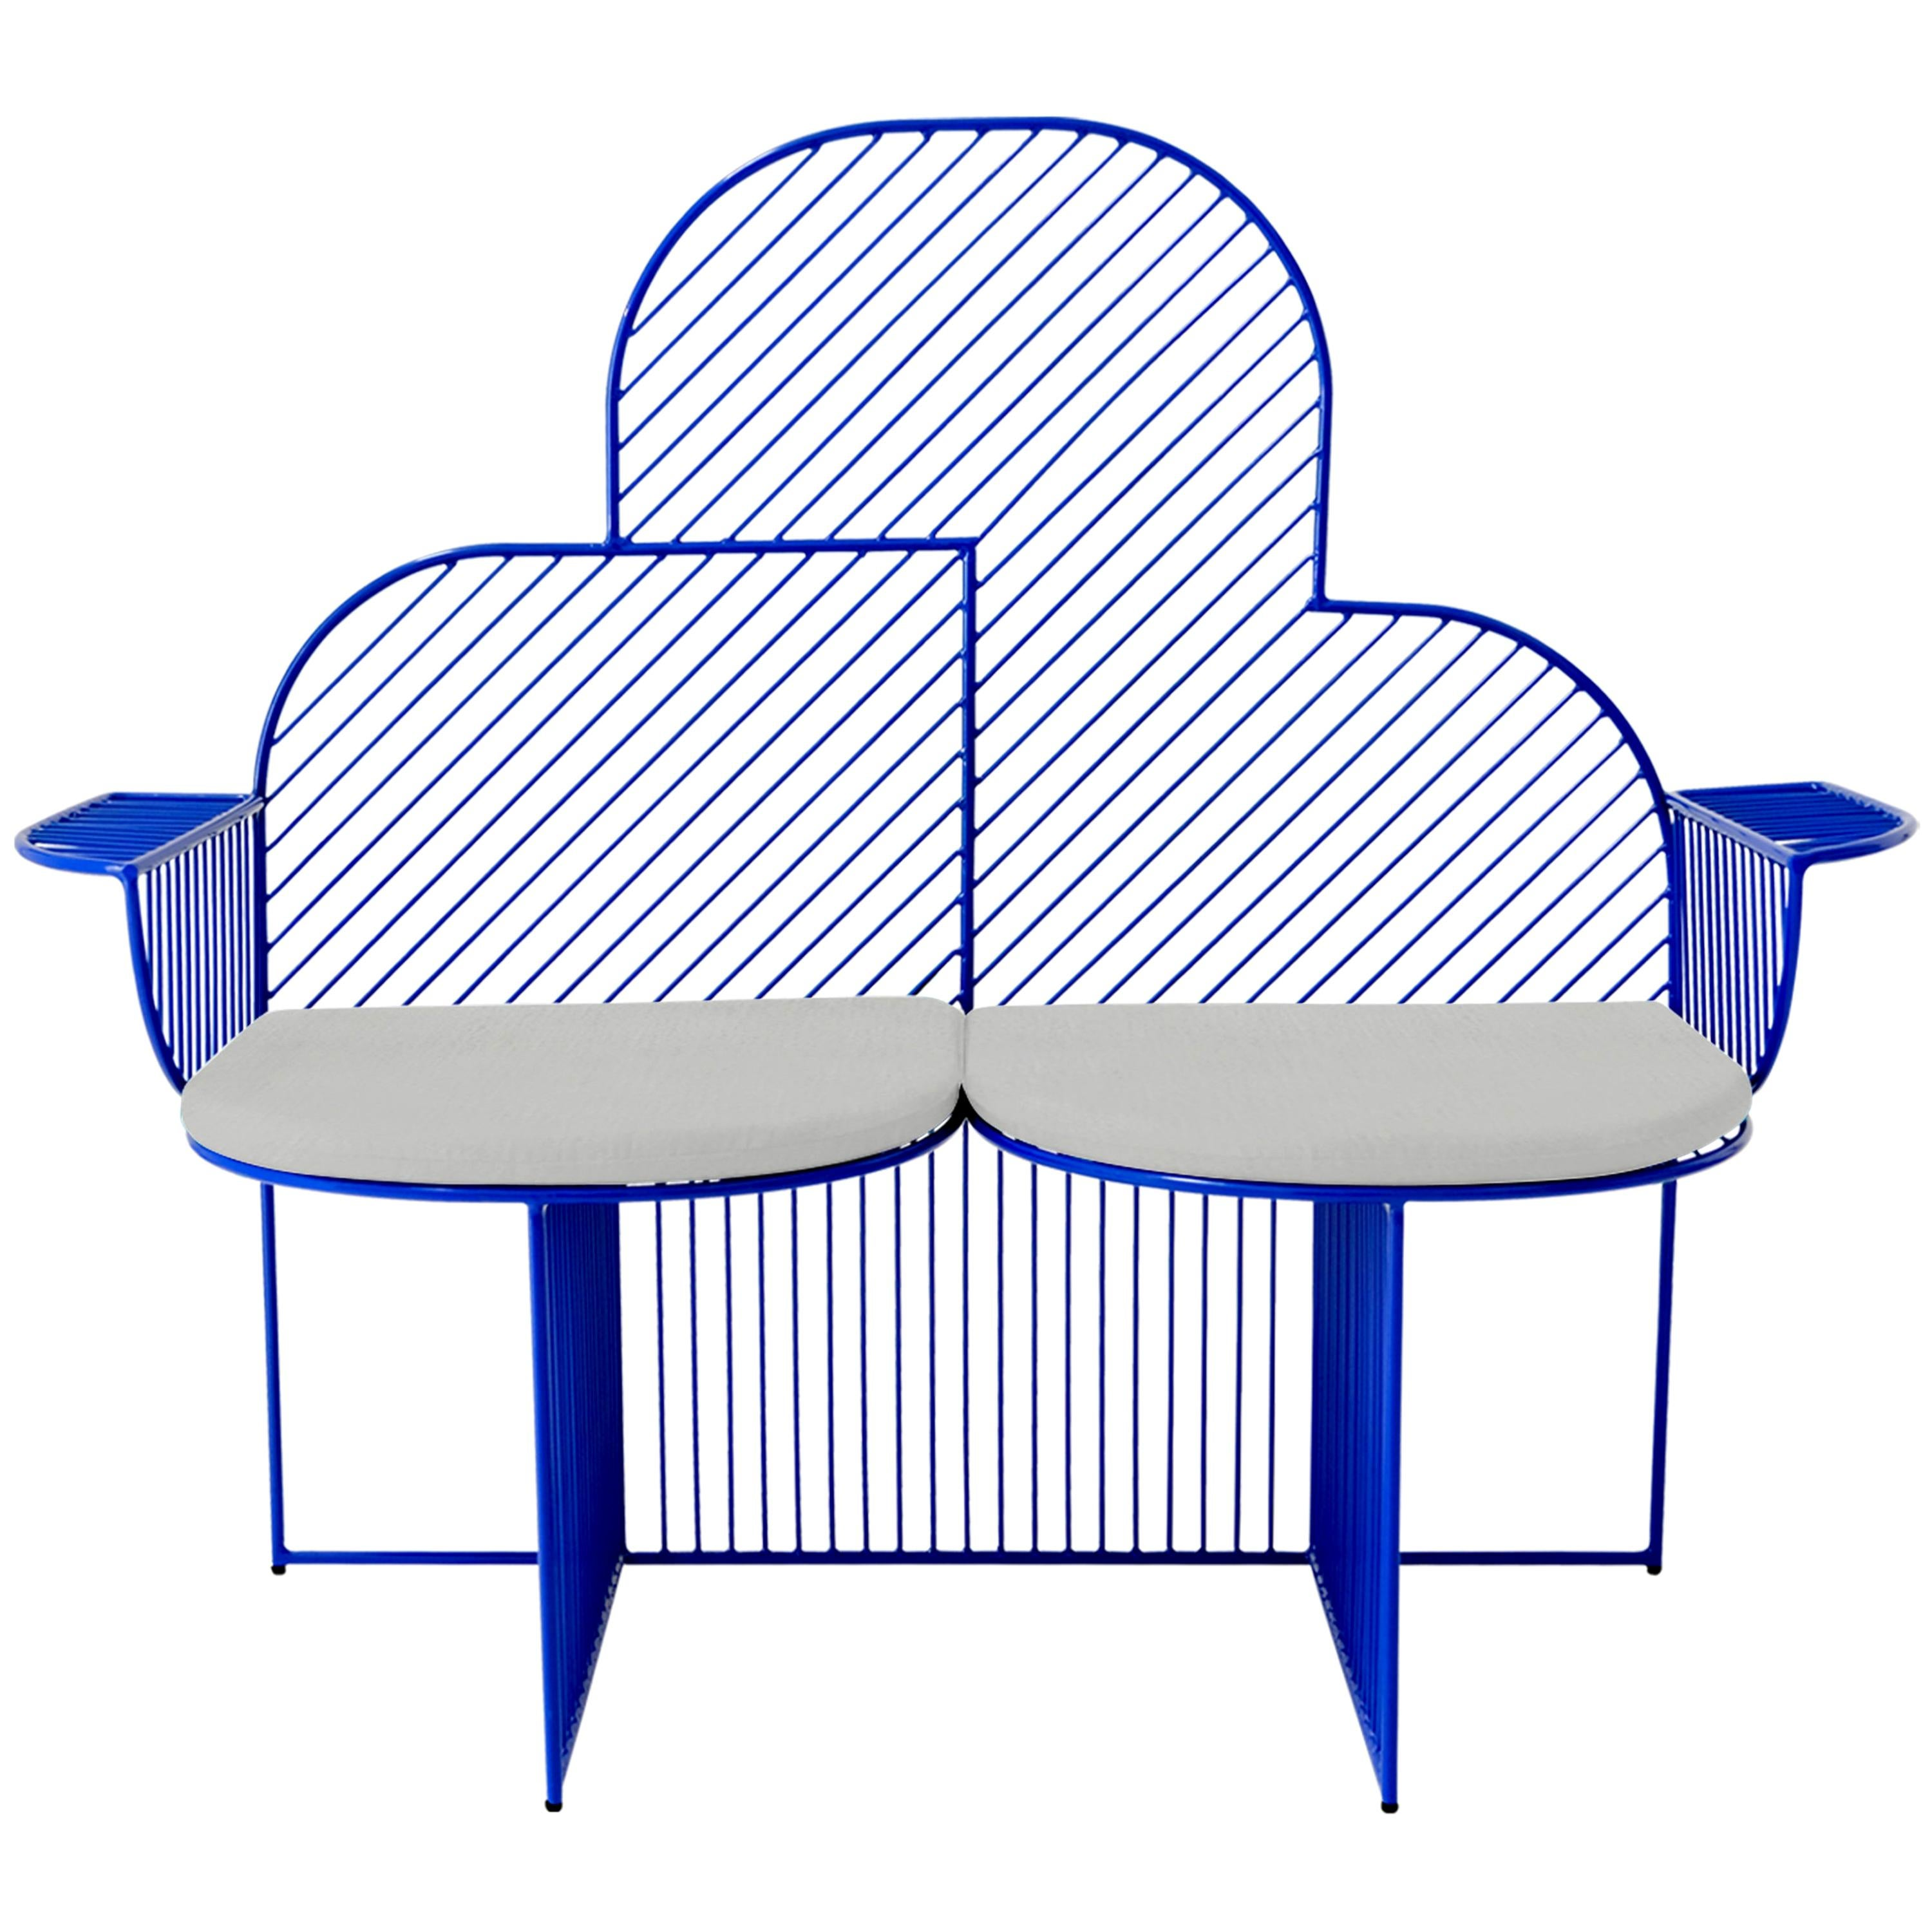 Modern Bench, Wire Cloud Bench by Bend Goods, Electric Blue